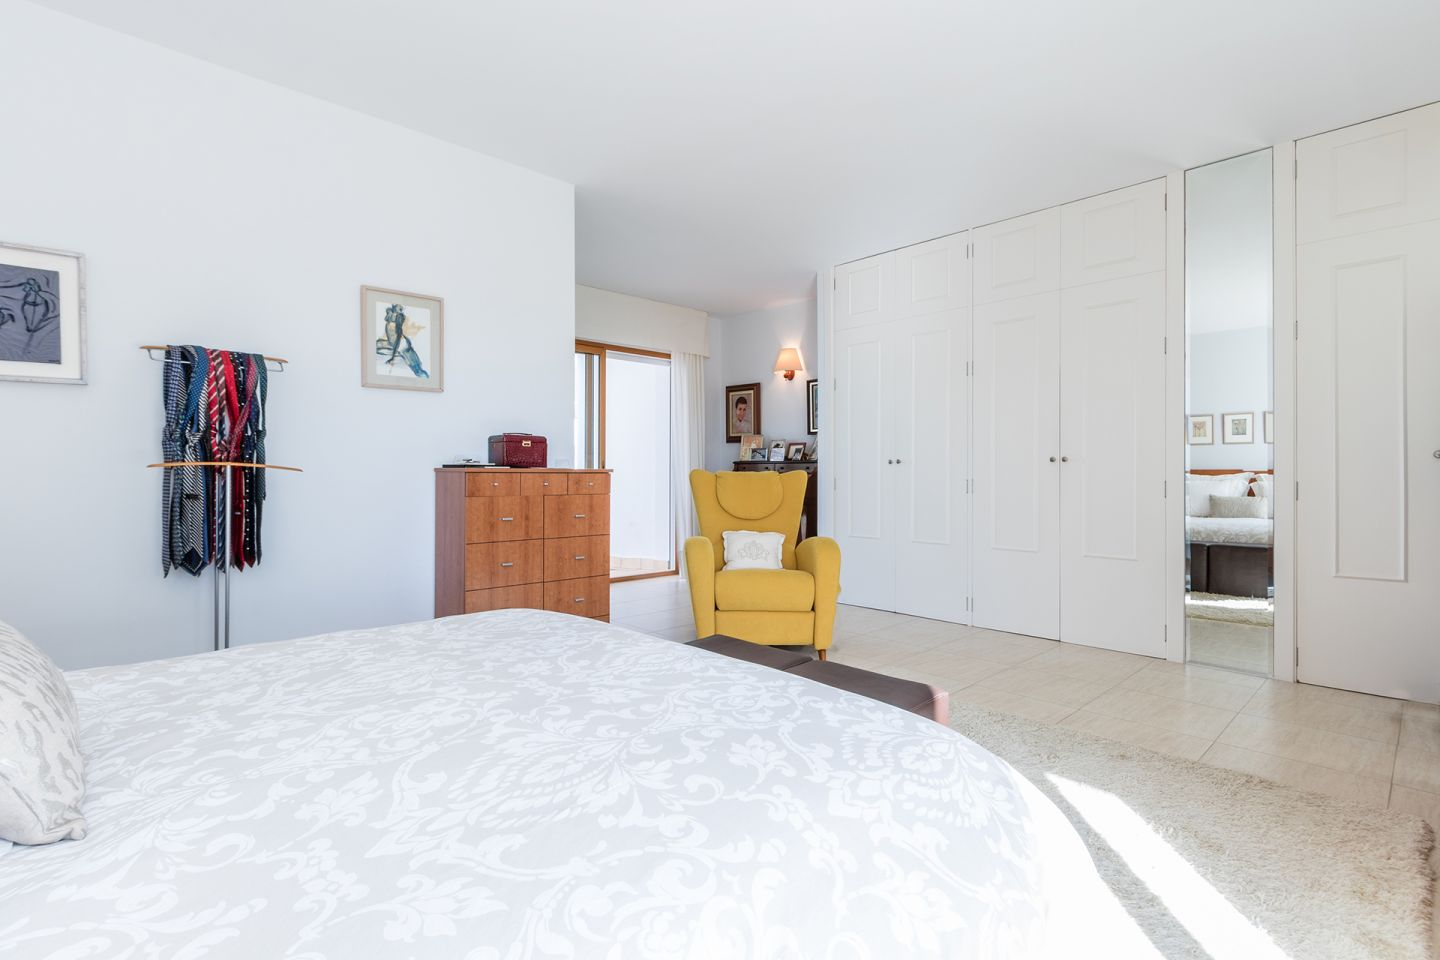 4 Bed Semidetached House for sale in PUERTO POLLENSA 11